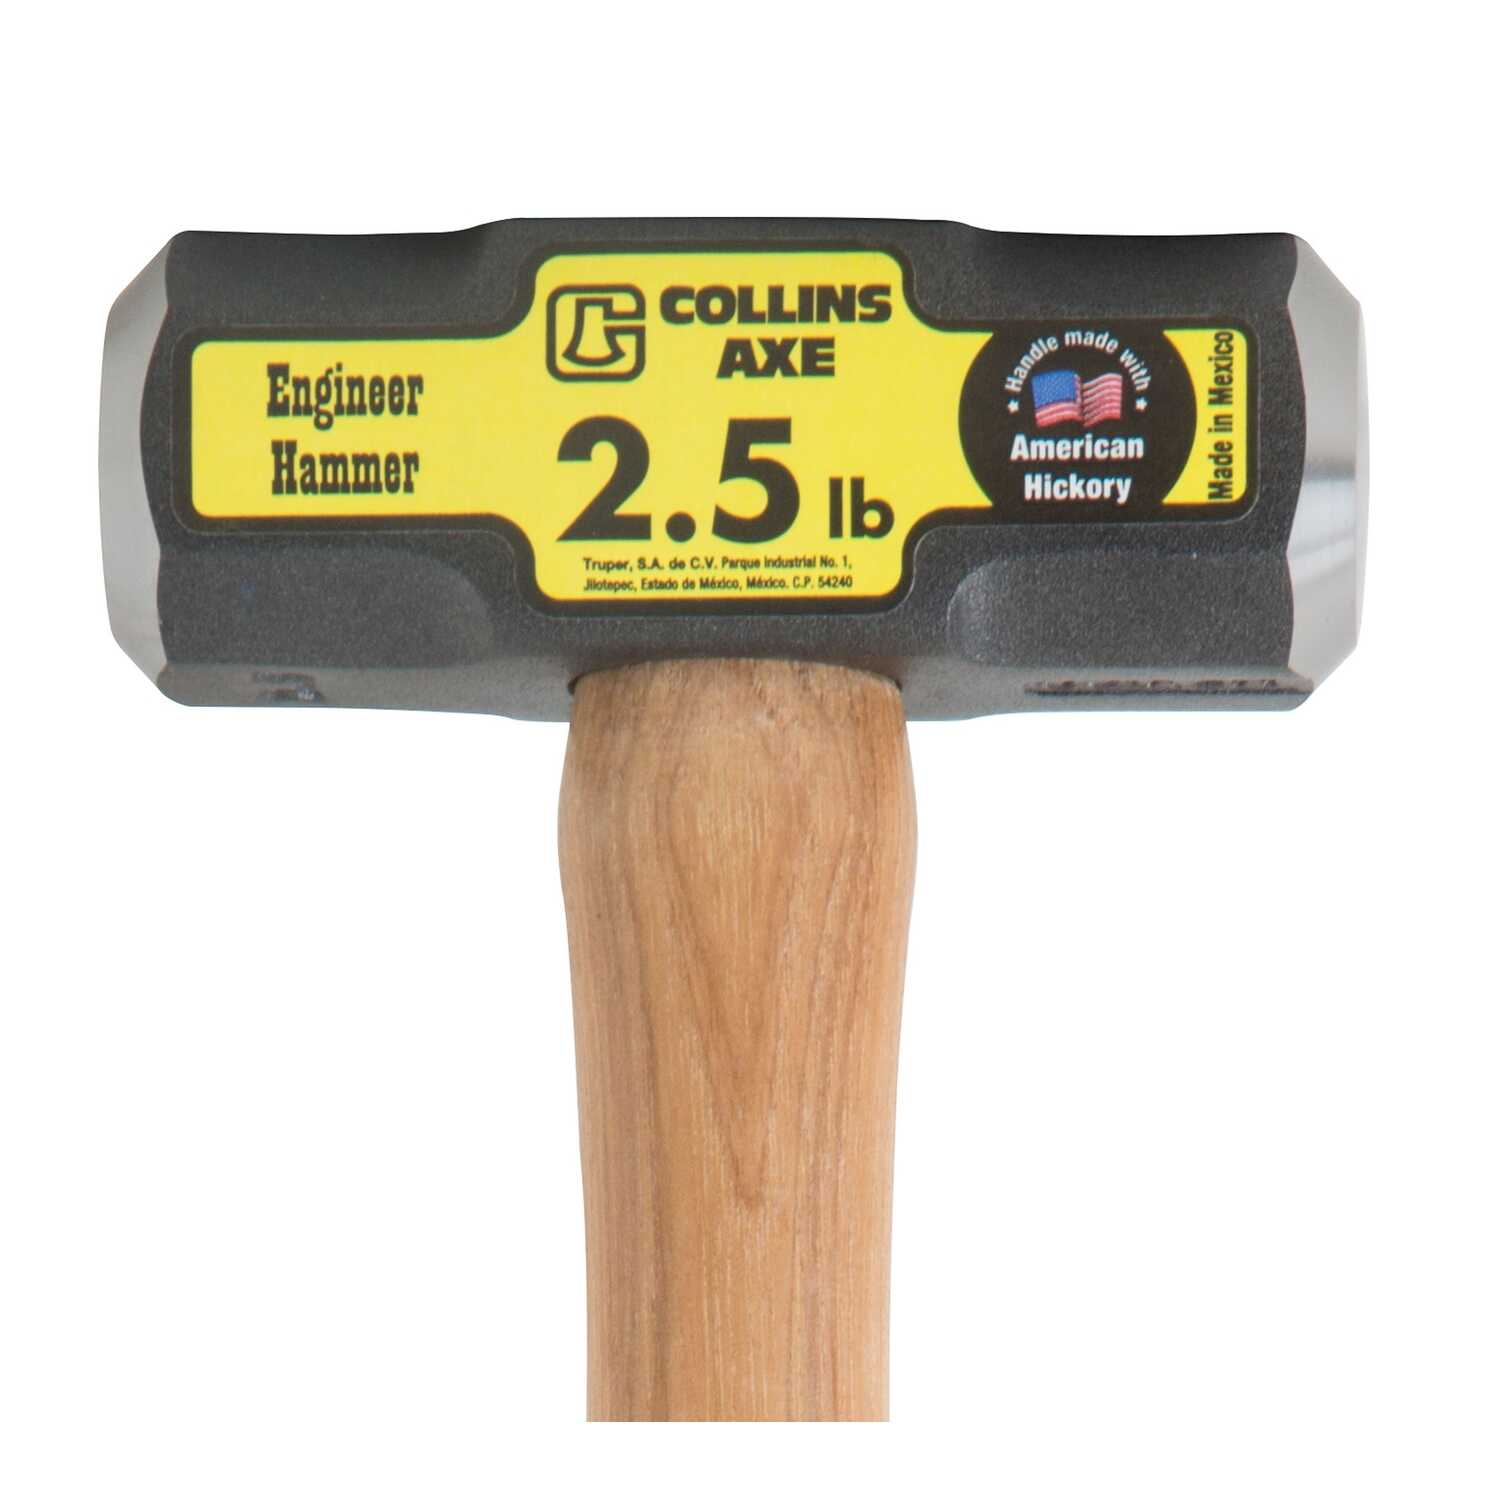 Collins  2-1/2 lb. Forged High Carbon Steel Head Engineer Hammer  16 in. L x 1.6 in. Dia.